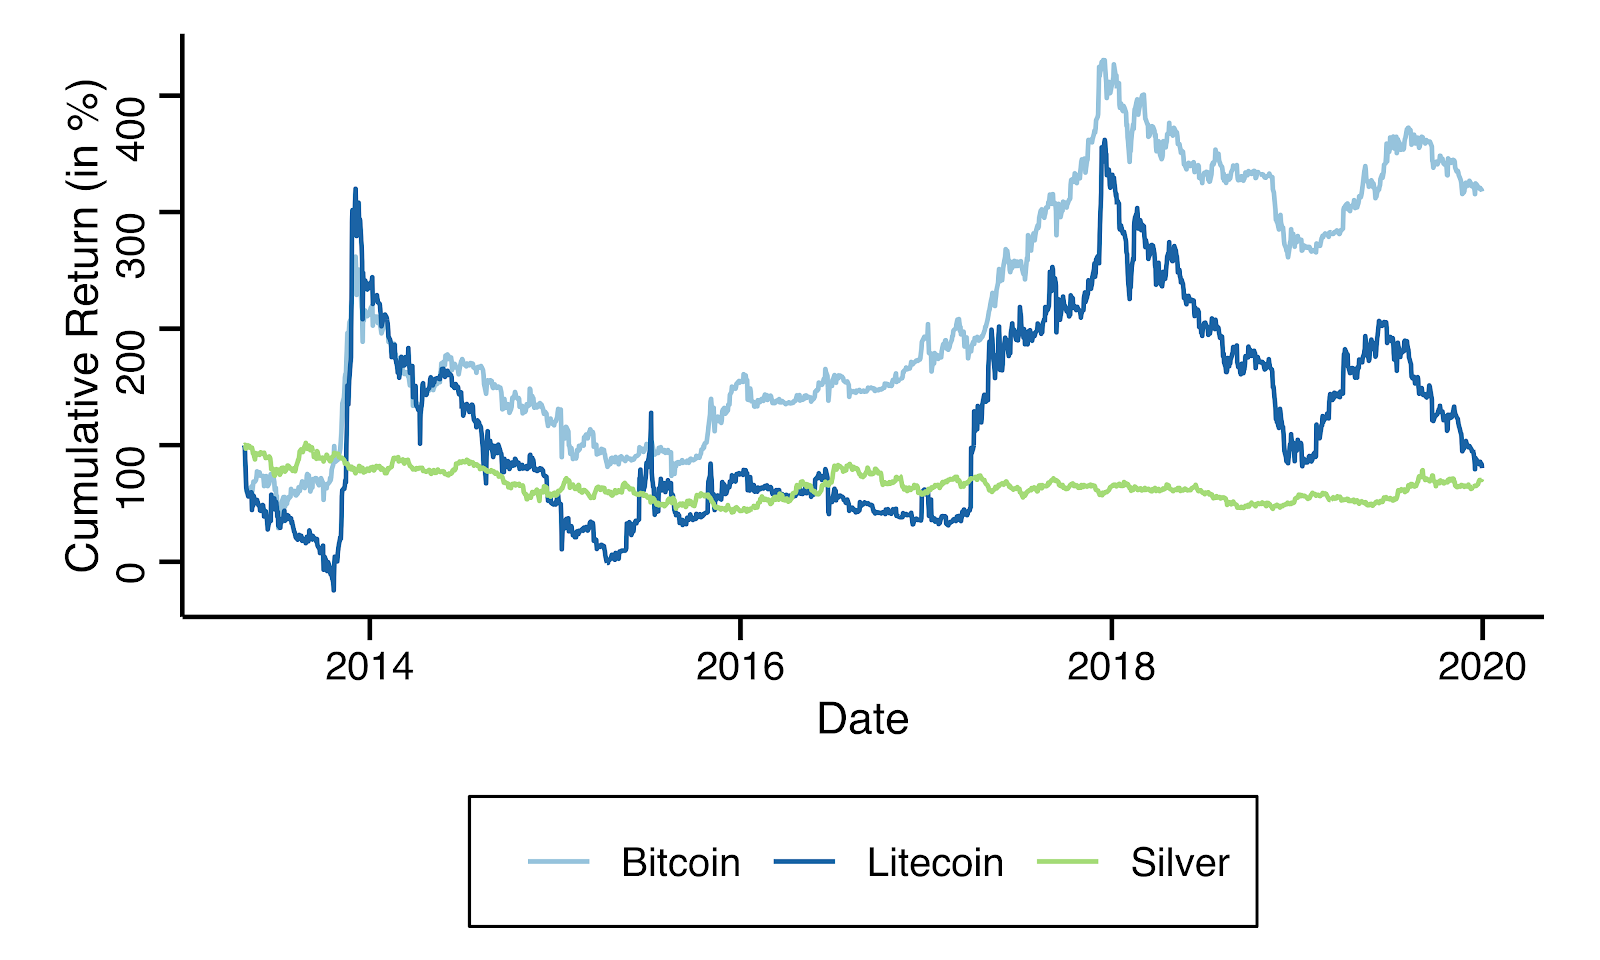 Cumulative Bitcoin, Litecoin and silver returns from investments made between May 2013 and January 2020